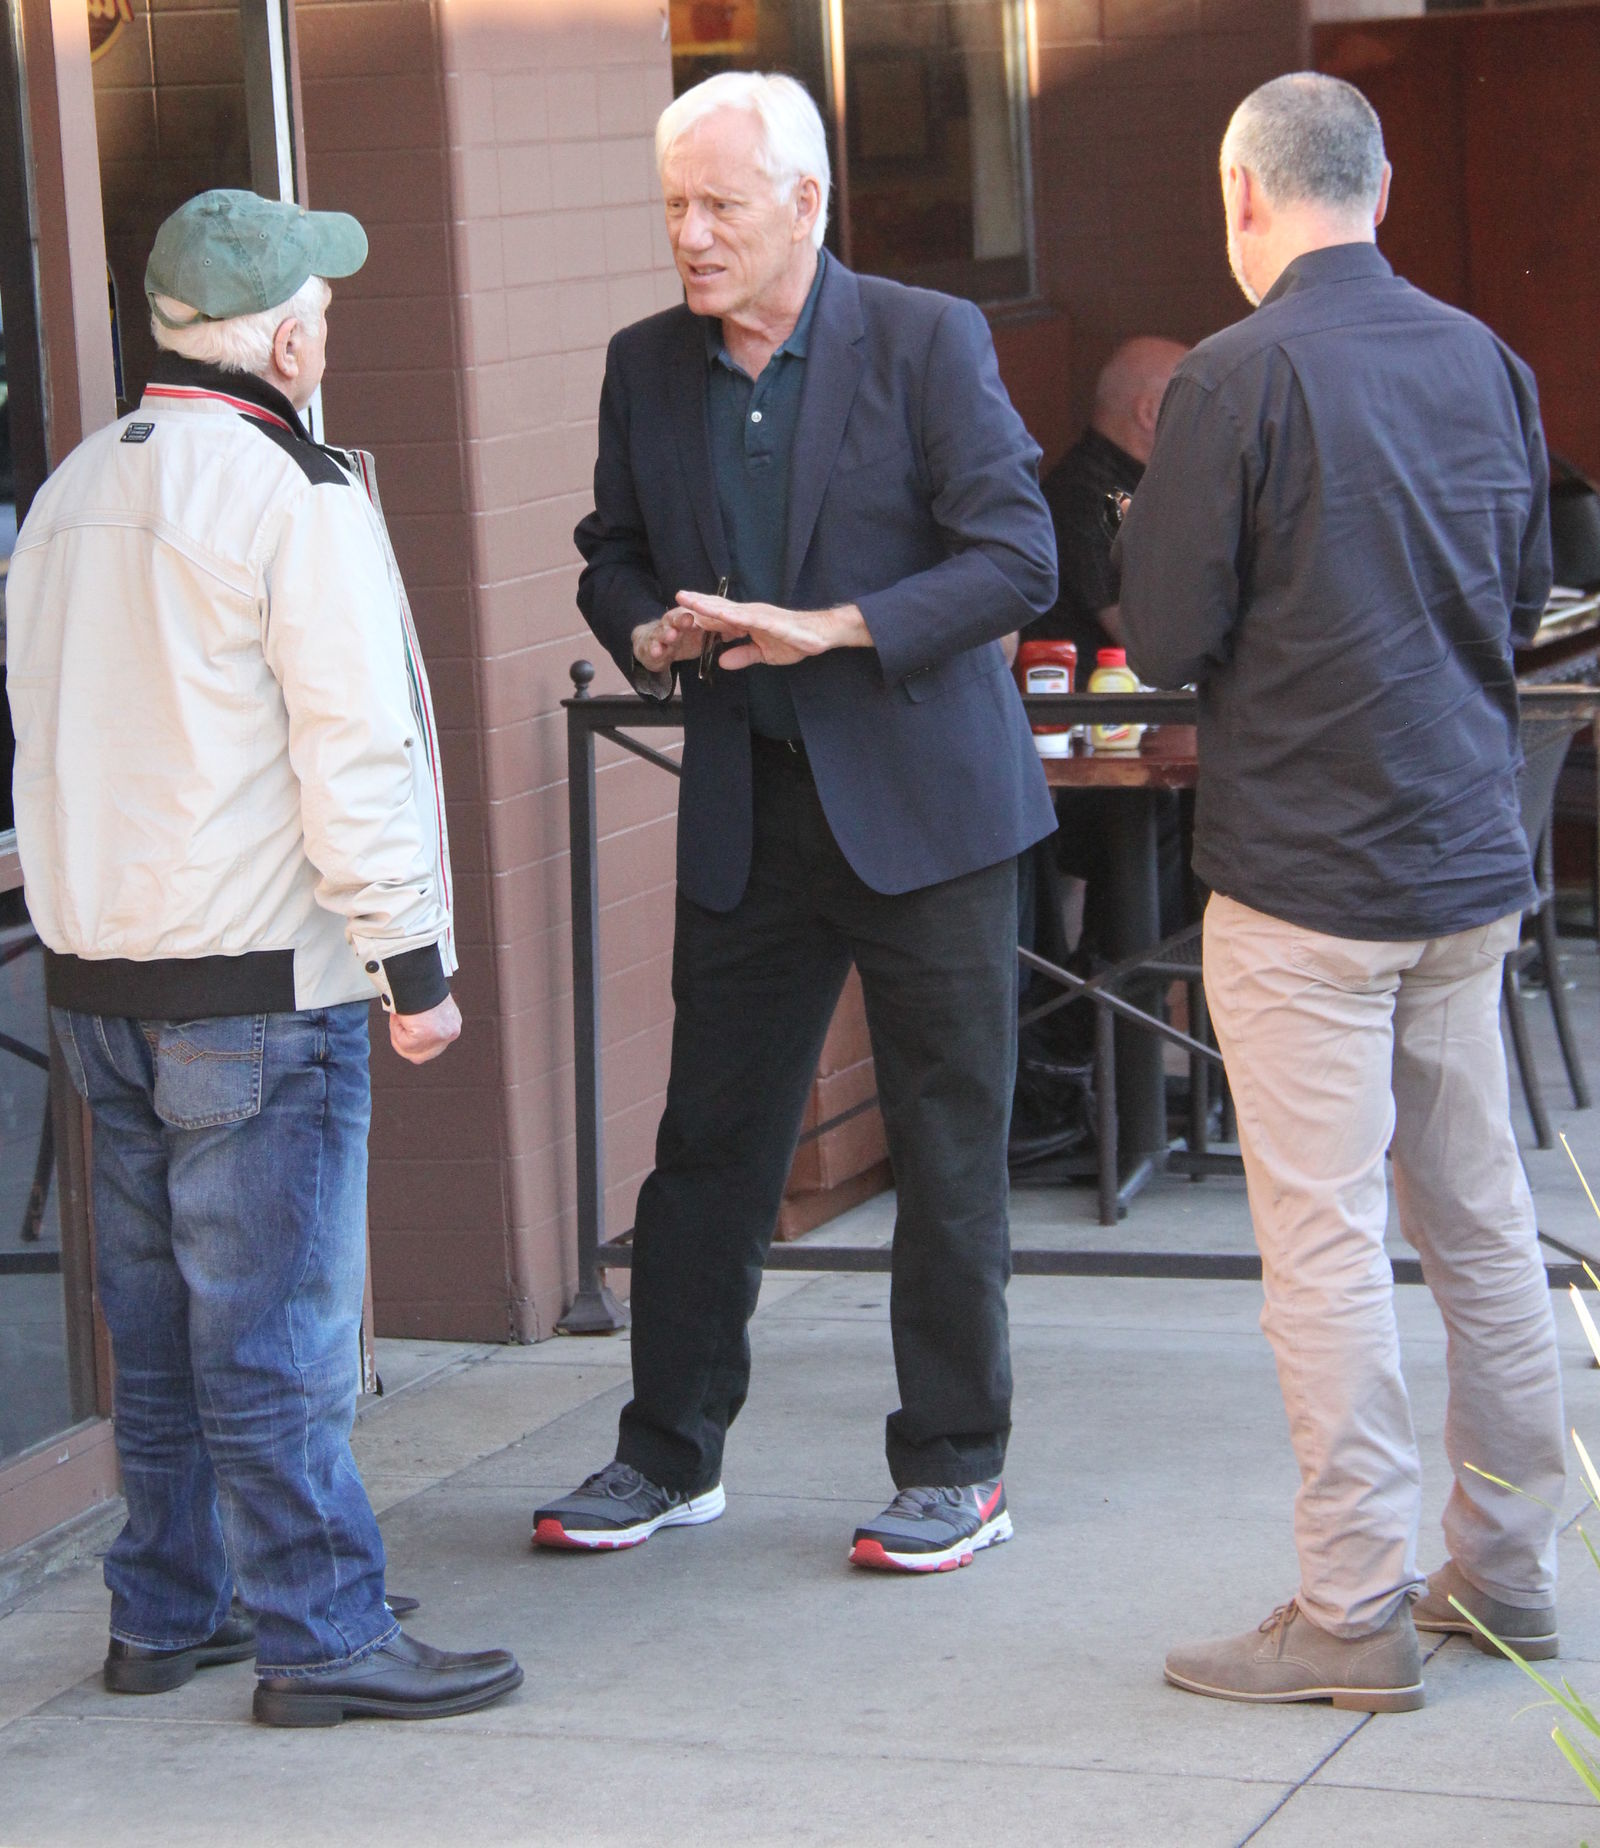 James Woods in conversation with Richard Dreyfus after having lunch in Los Angeles, California. (When: Feb. 4, 2016. Credit: WENN.com)